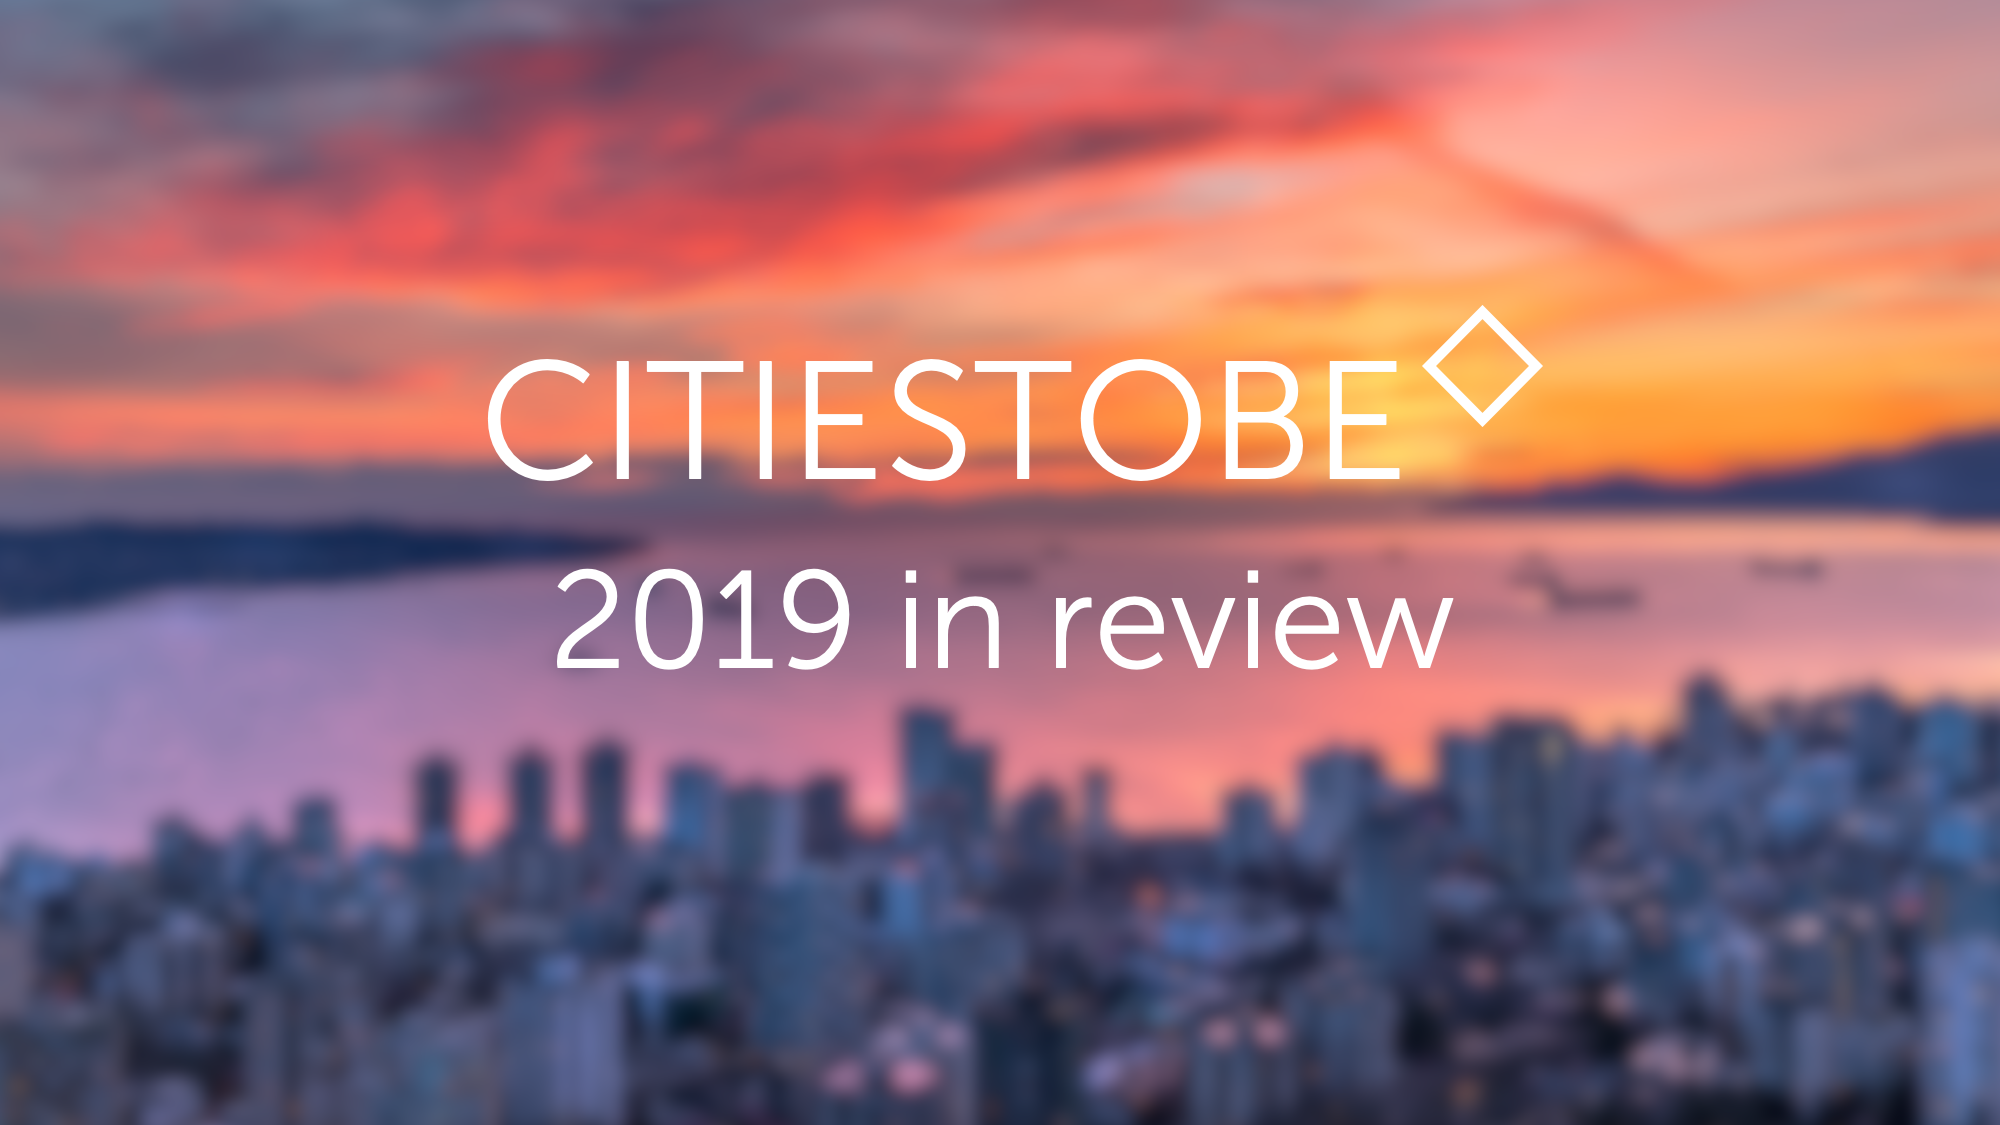 2019 in Urban Challenges: CitiesToBe review of the Year